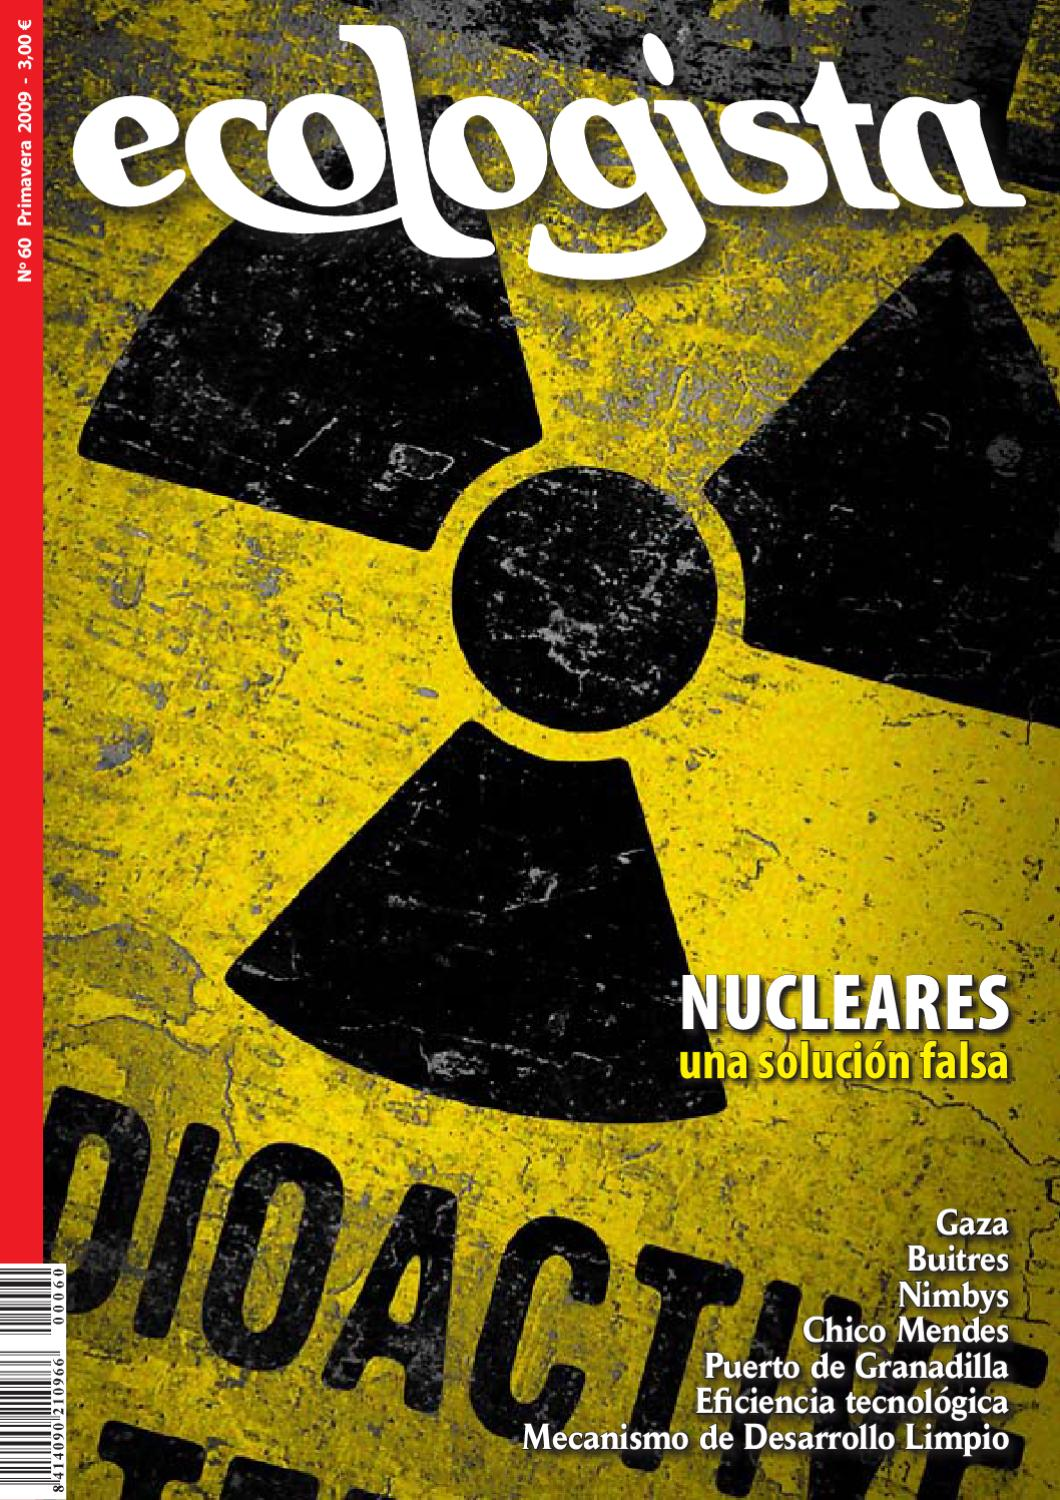 El Ecologista nº 60 by Revista El Ecologista - issuu 5add1fc56b3b1